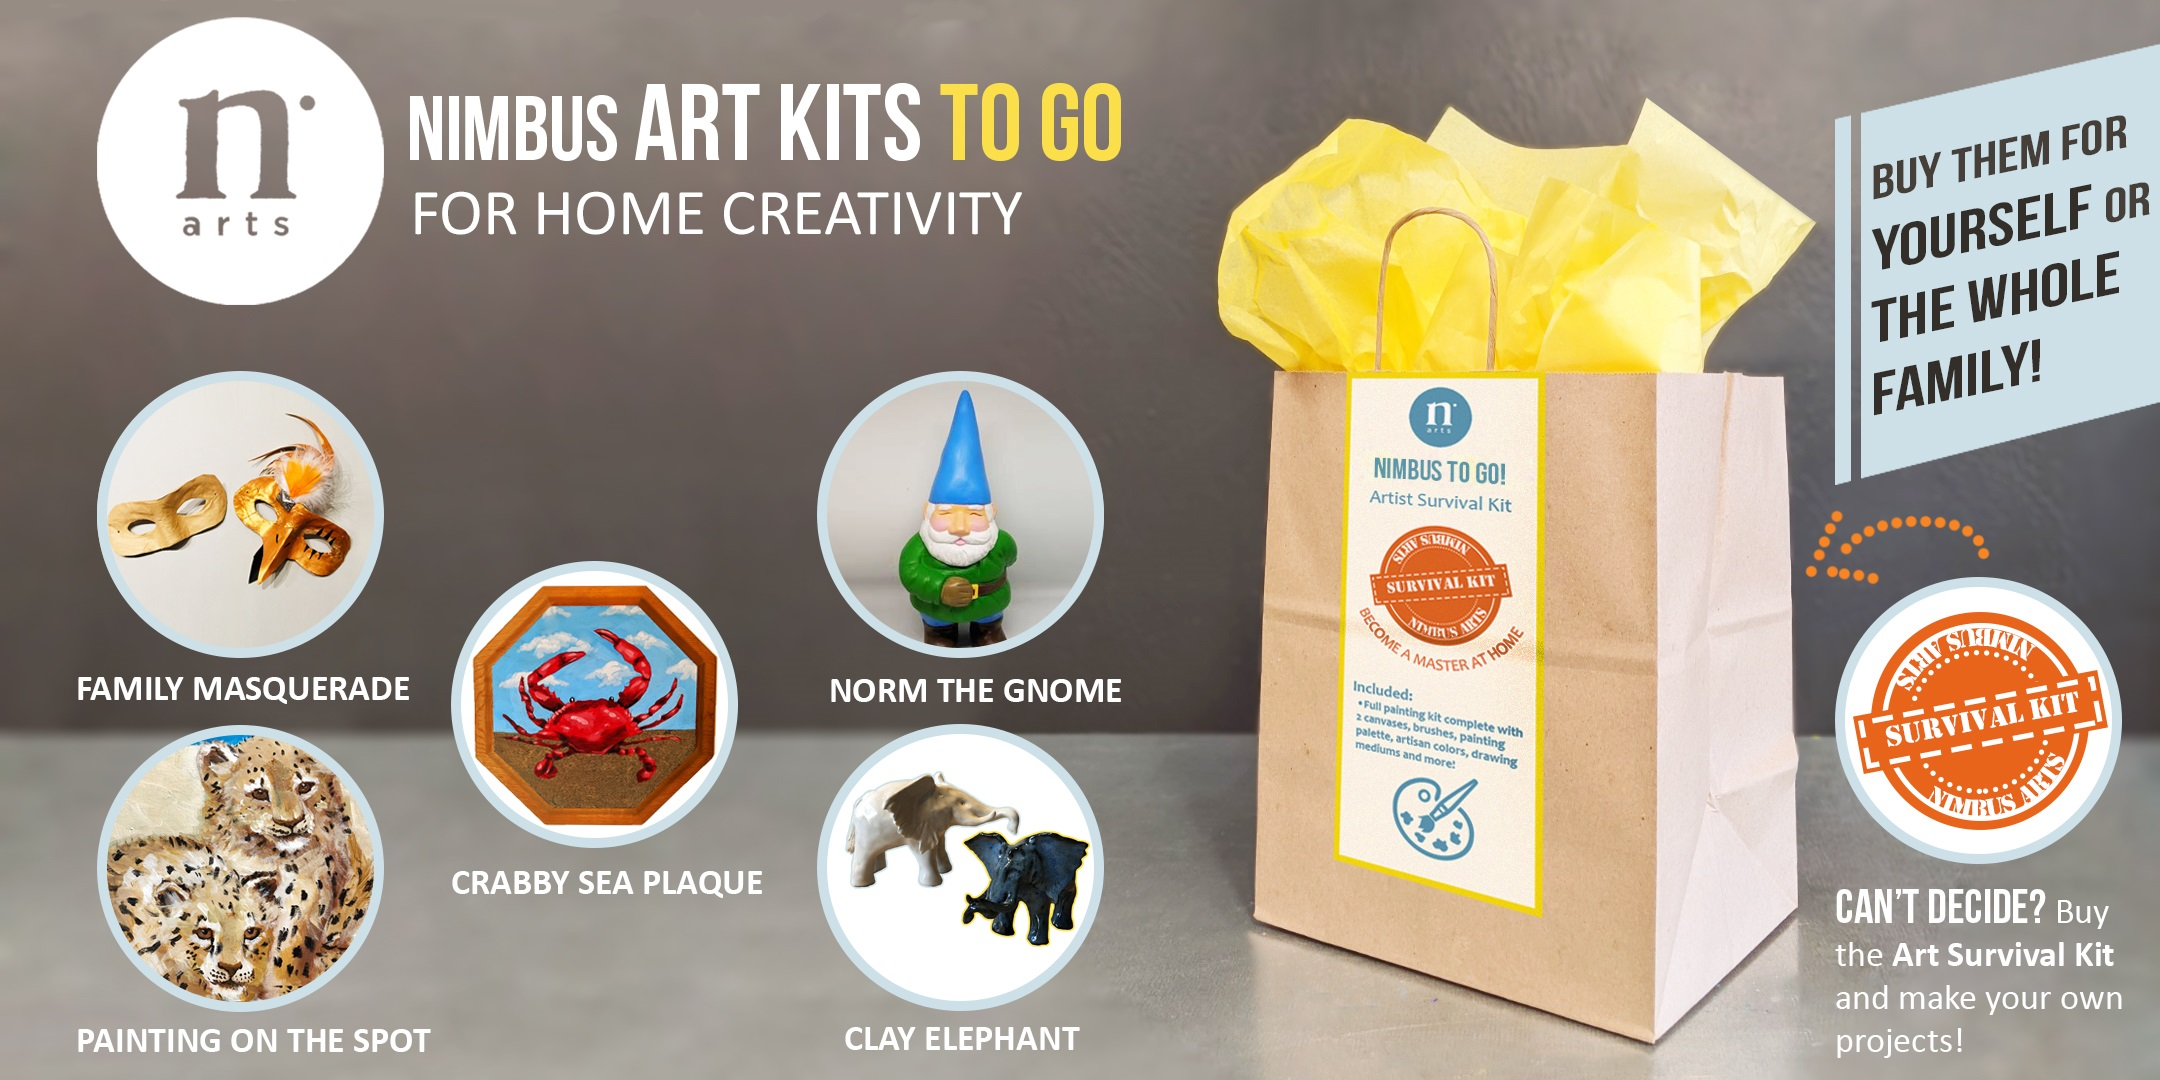 Nimbus Art Kits To Go Are Now Available!